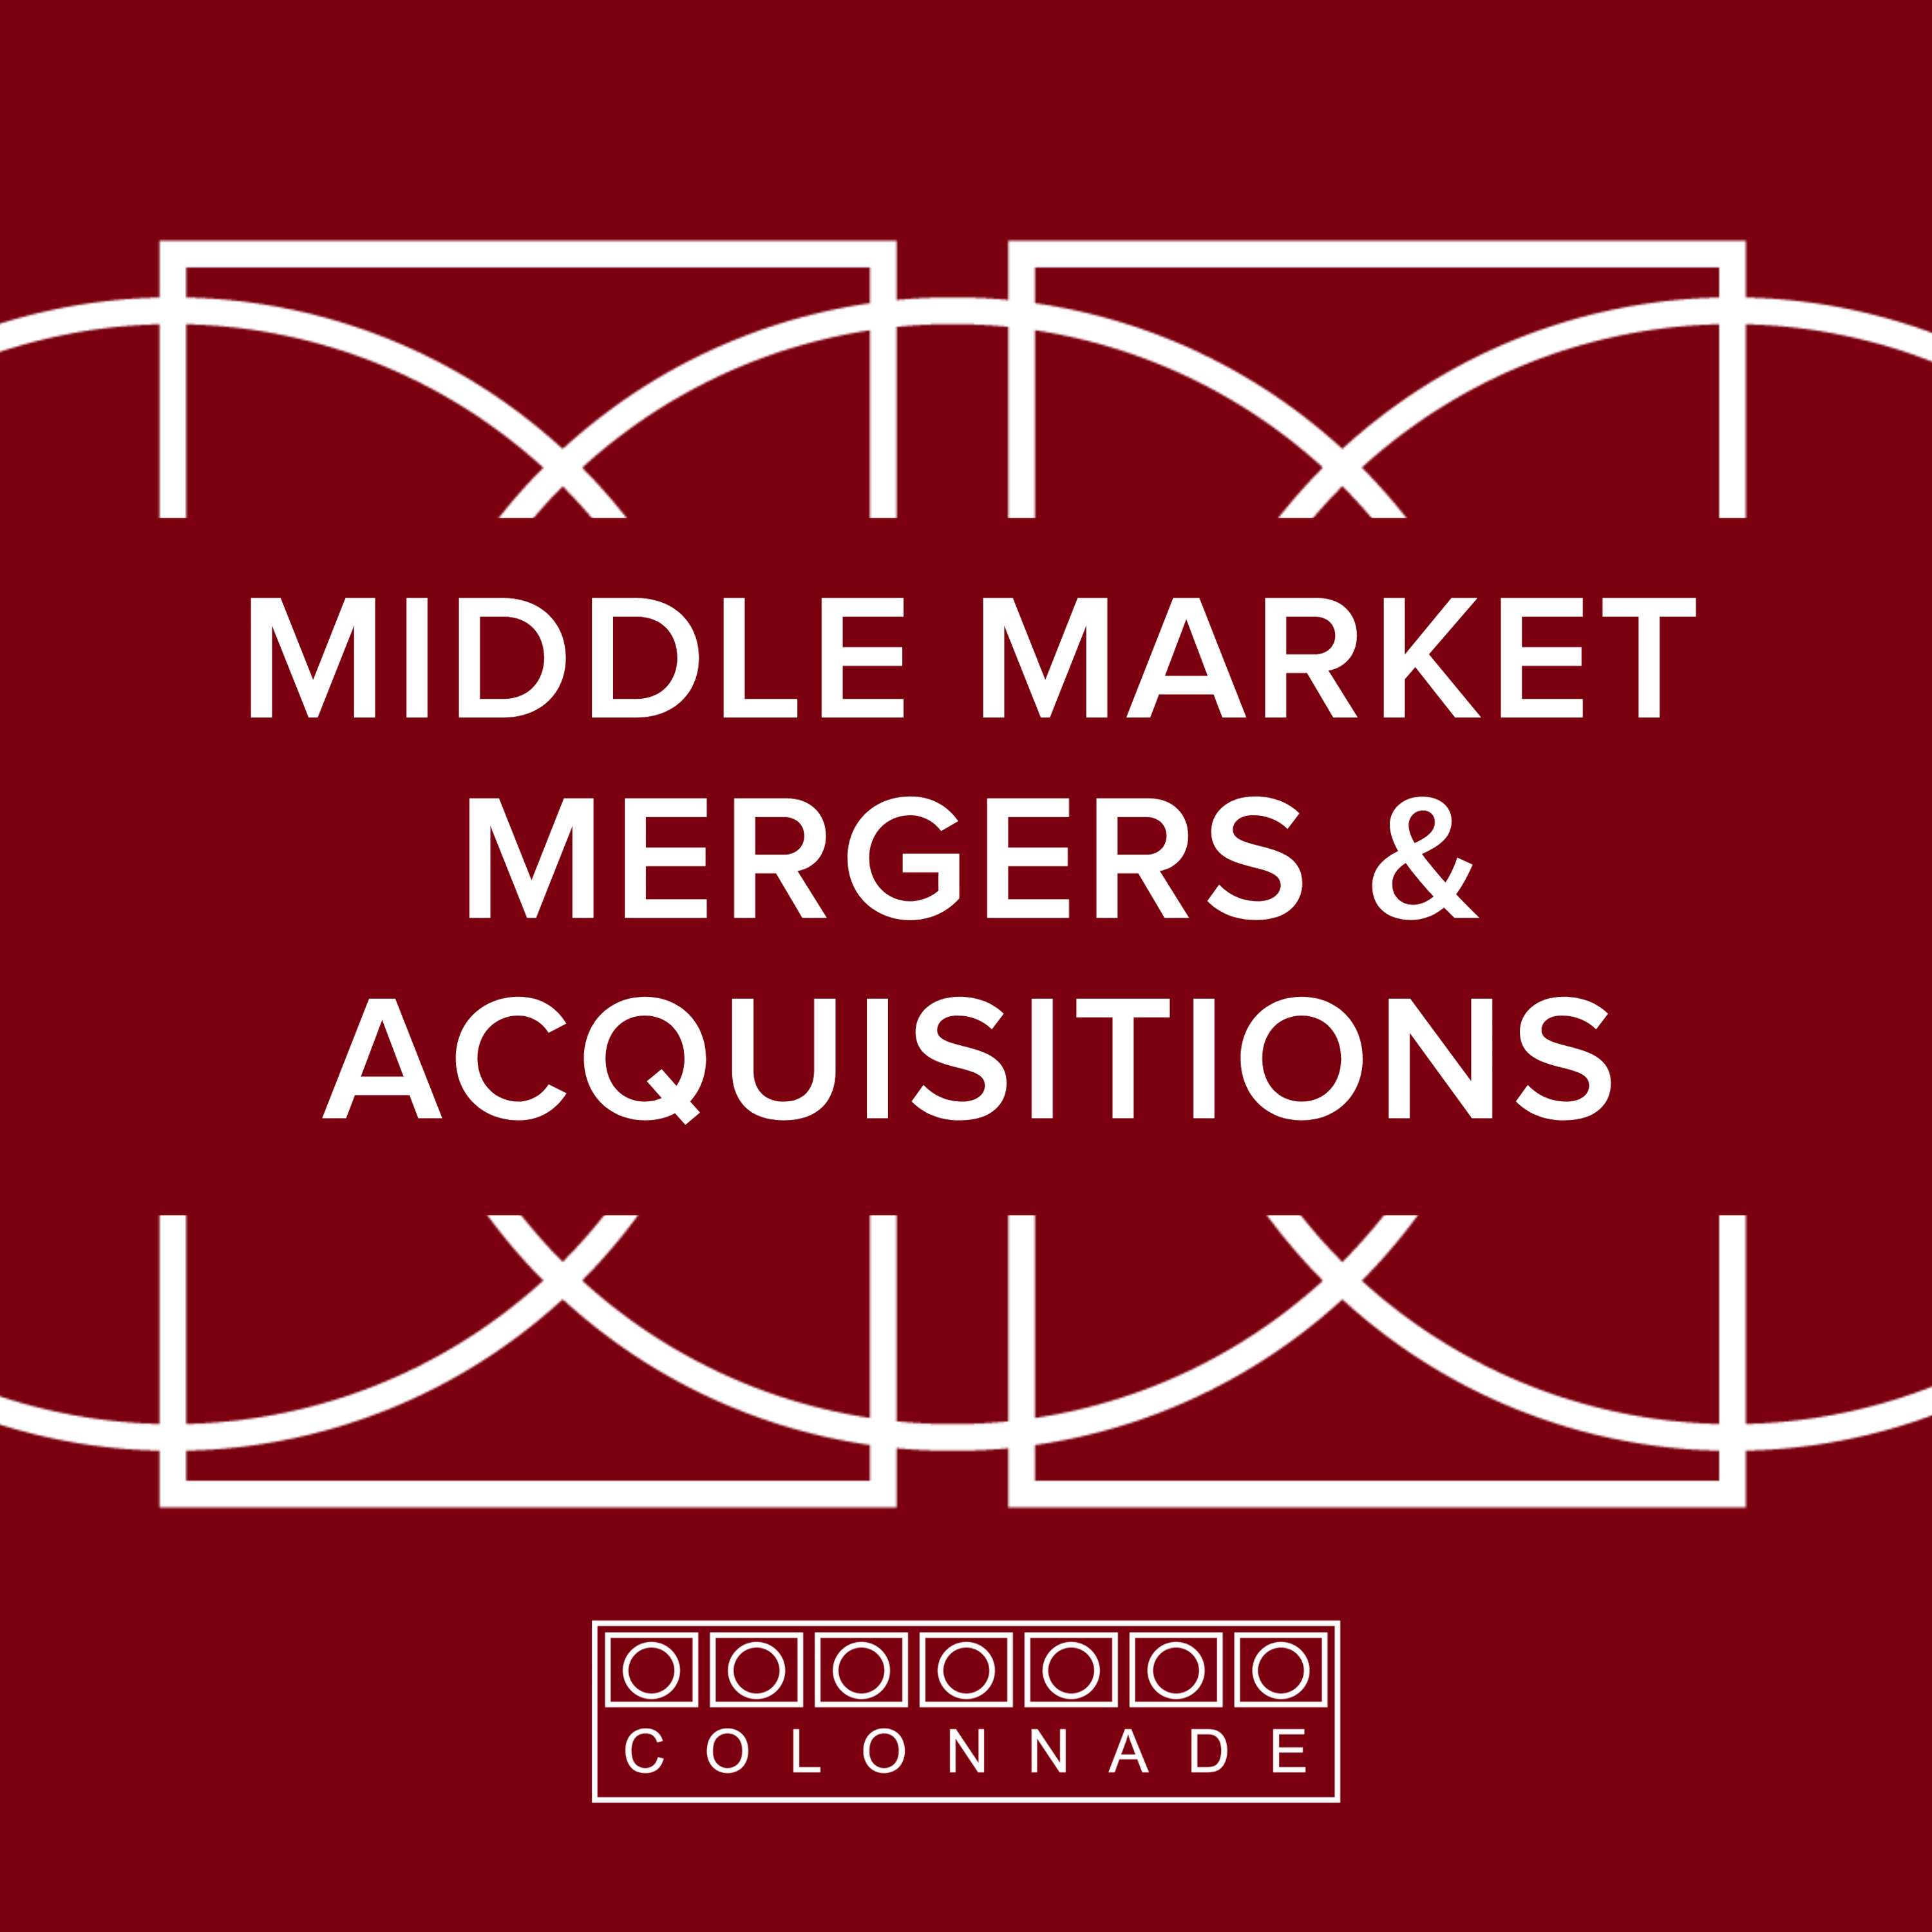 Middle Market Mergers and Acquisitions by Colonnade Advisors show art